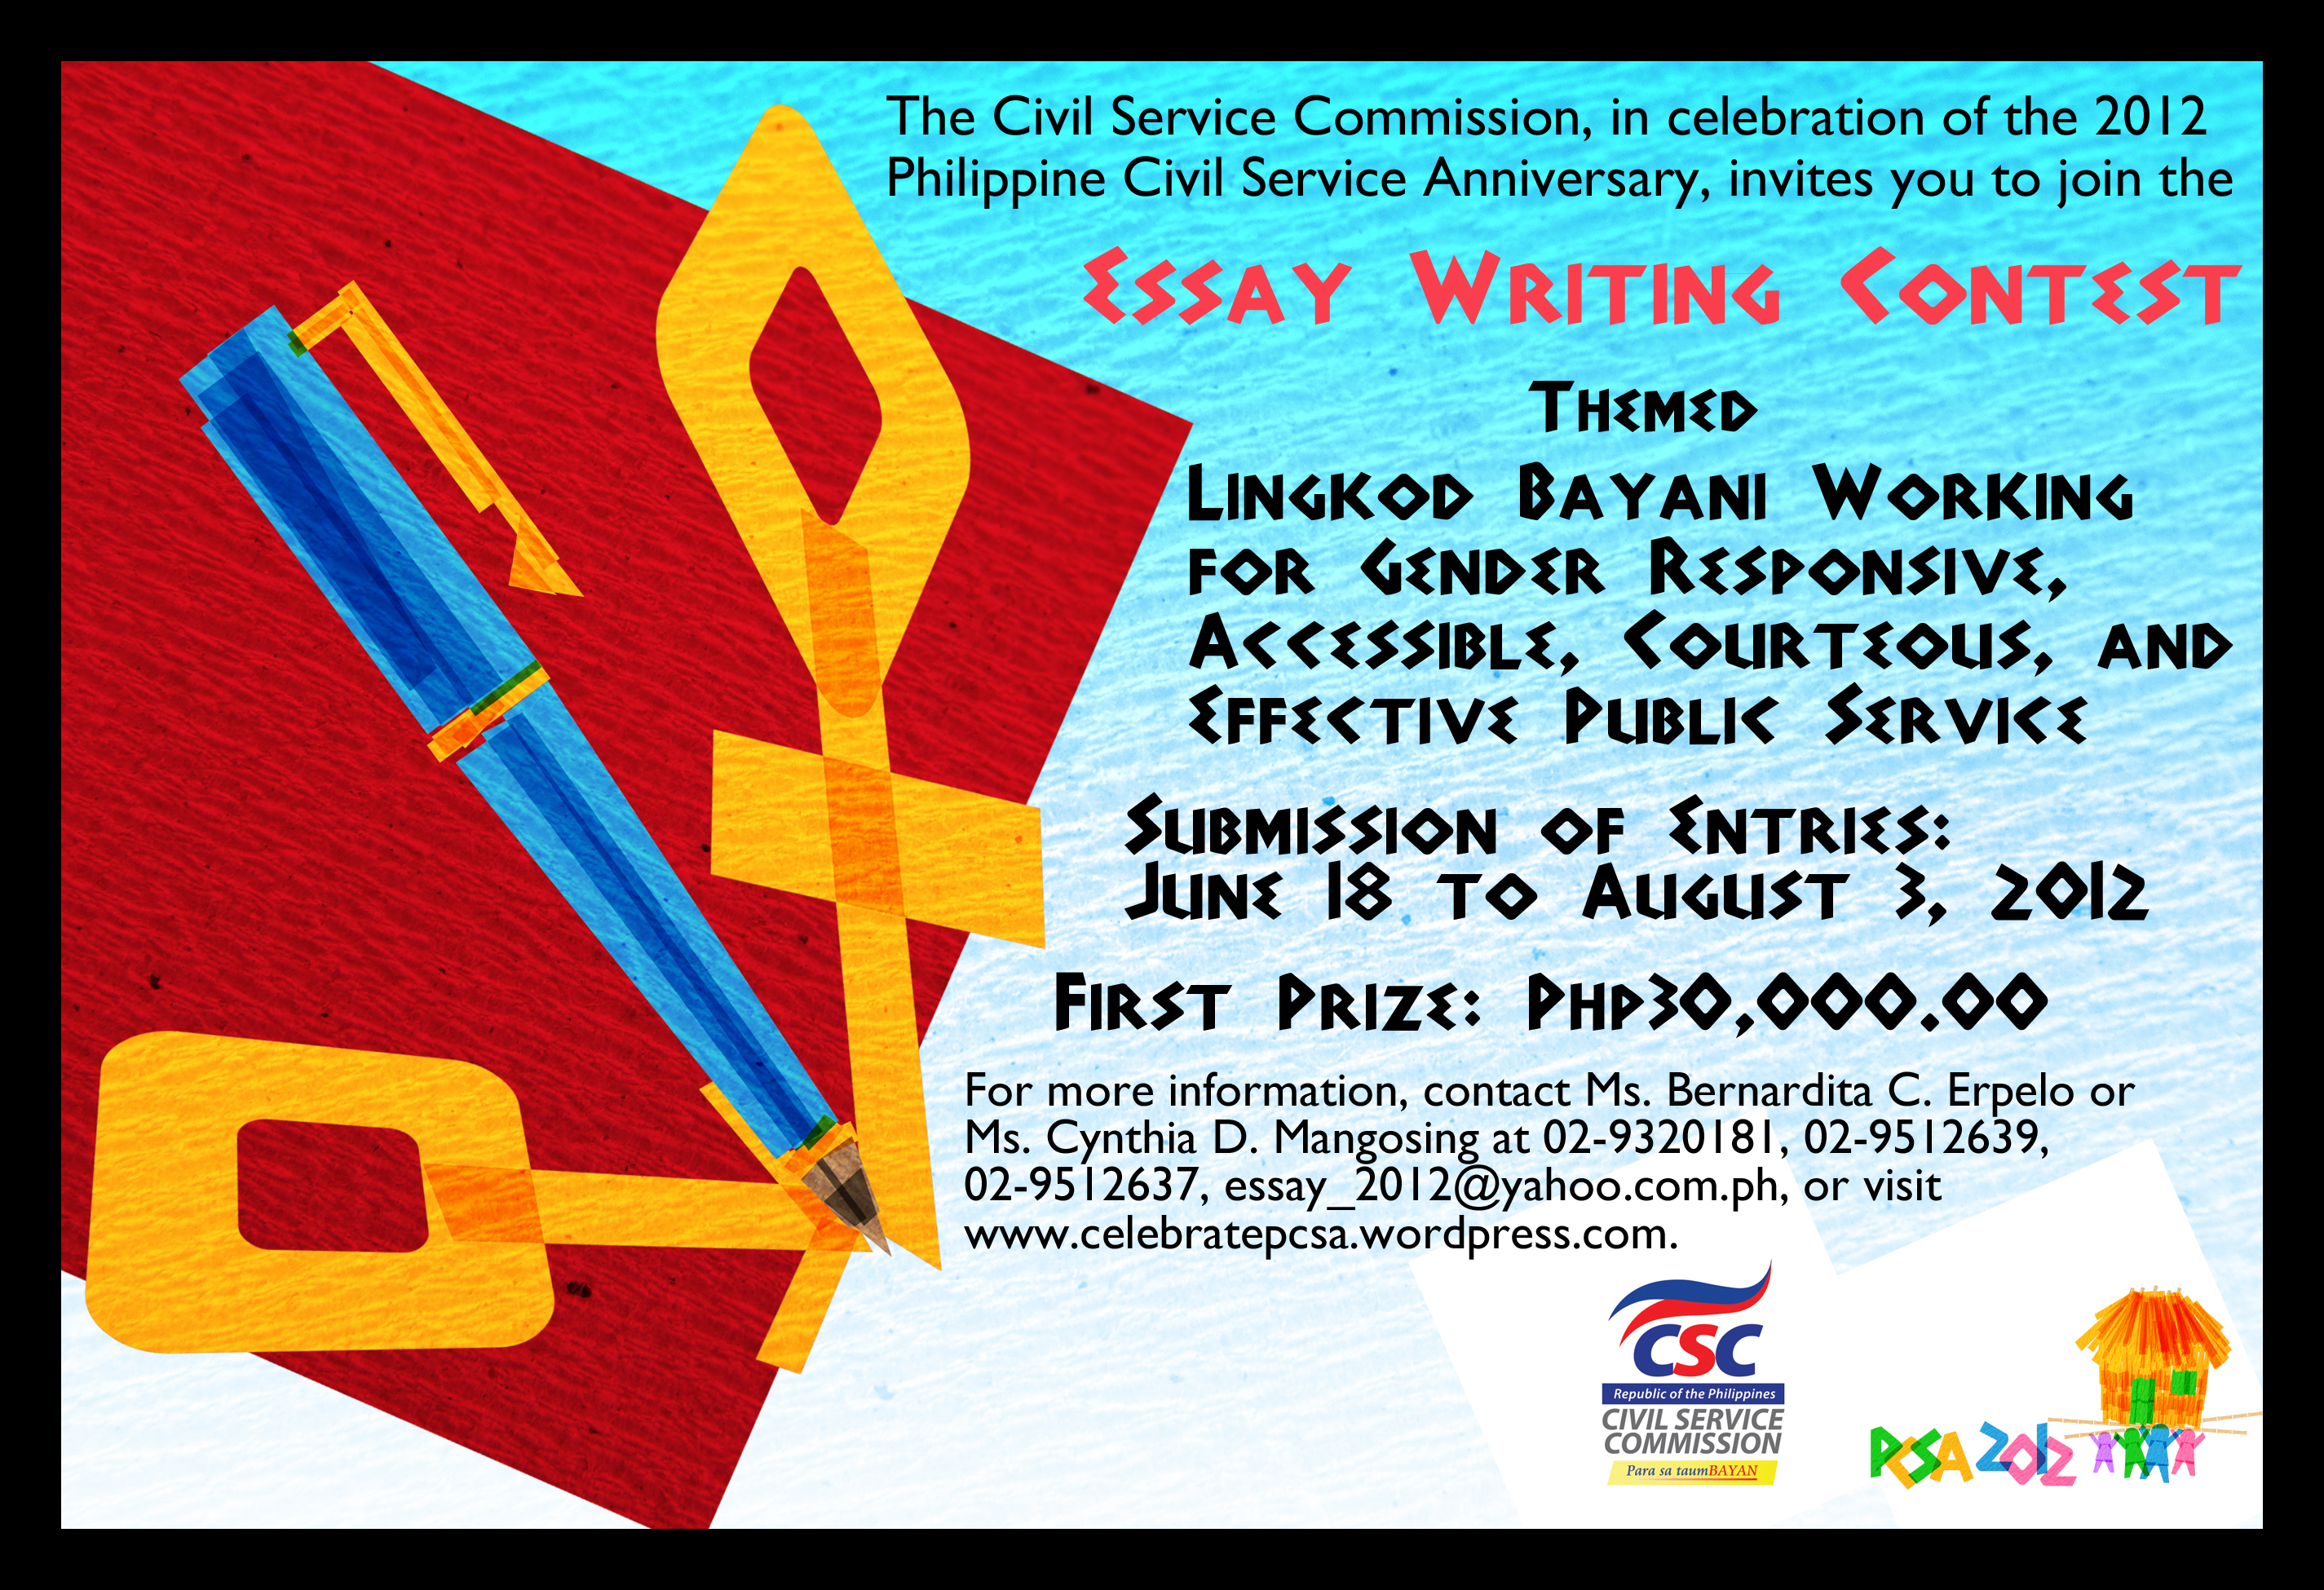 002 Essay Writing Contest 2012pcsa Flyer Kubo Essay3 Incredible International Competitions For High School Students Rules By Essayhub Full